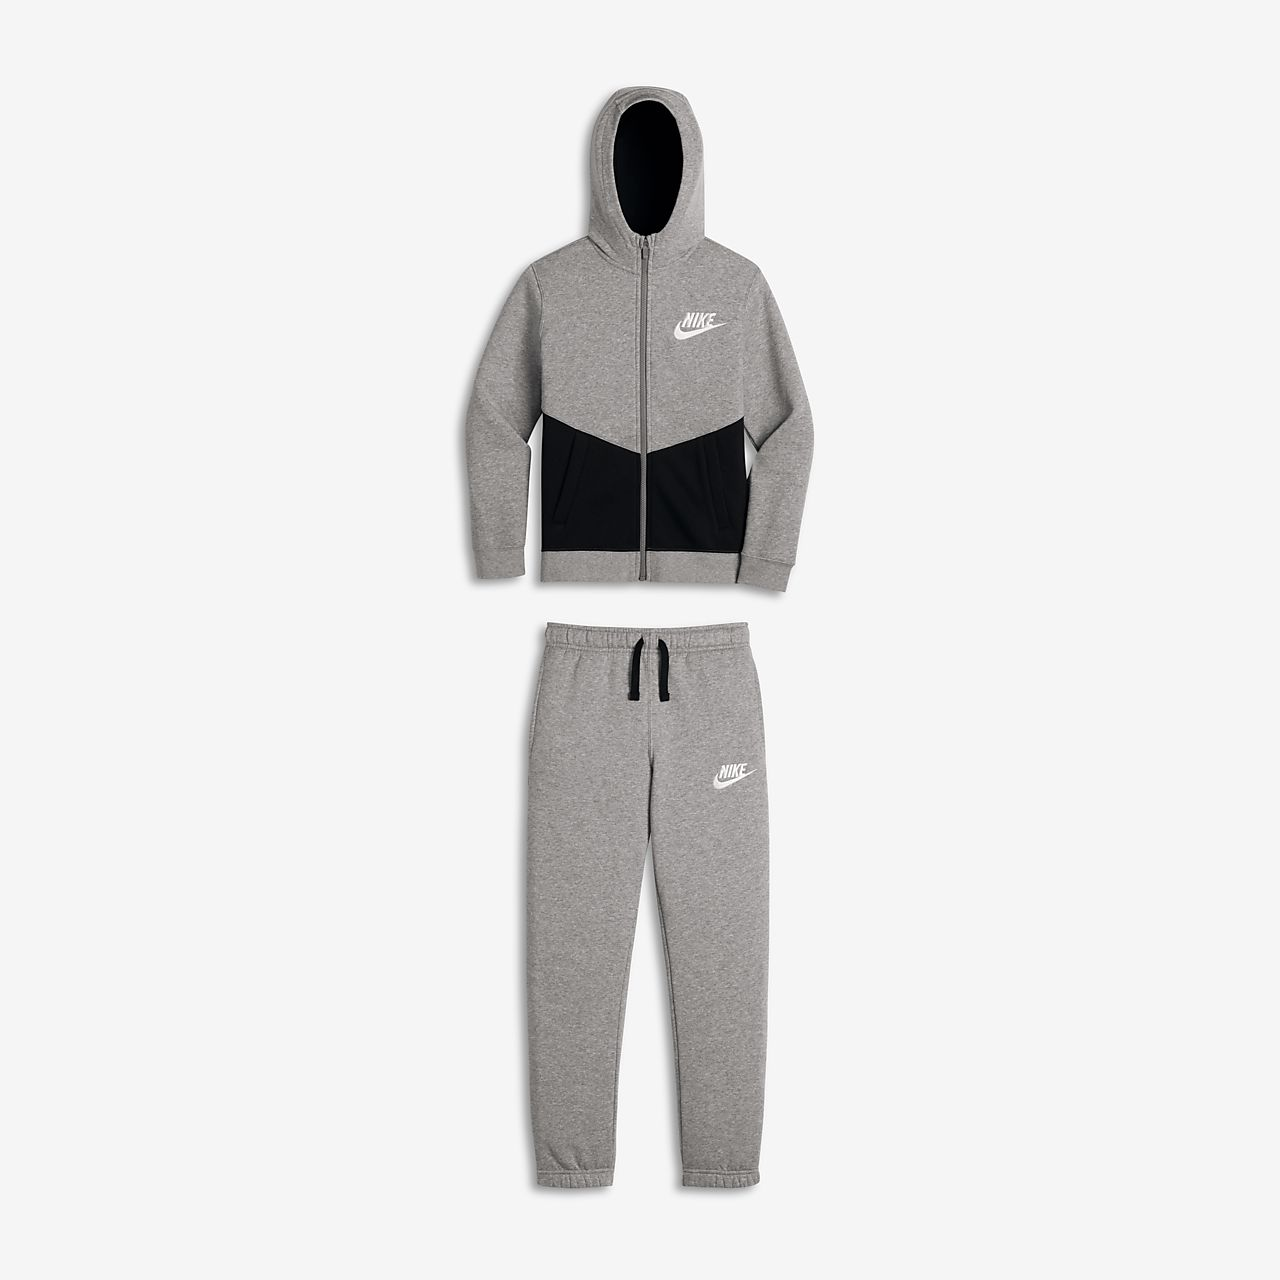 Nike Tracksuit Men S Women Kids Tracksuits Sports Direct